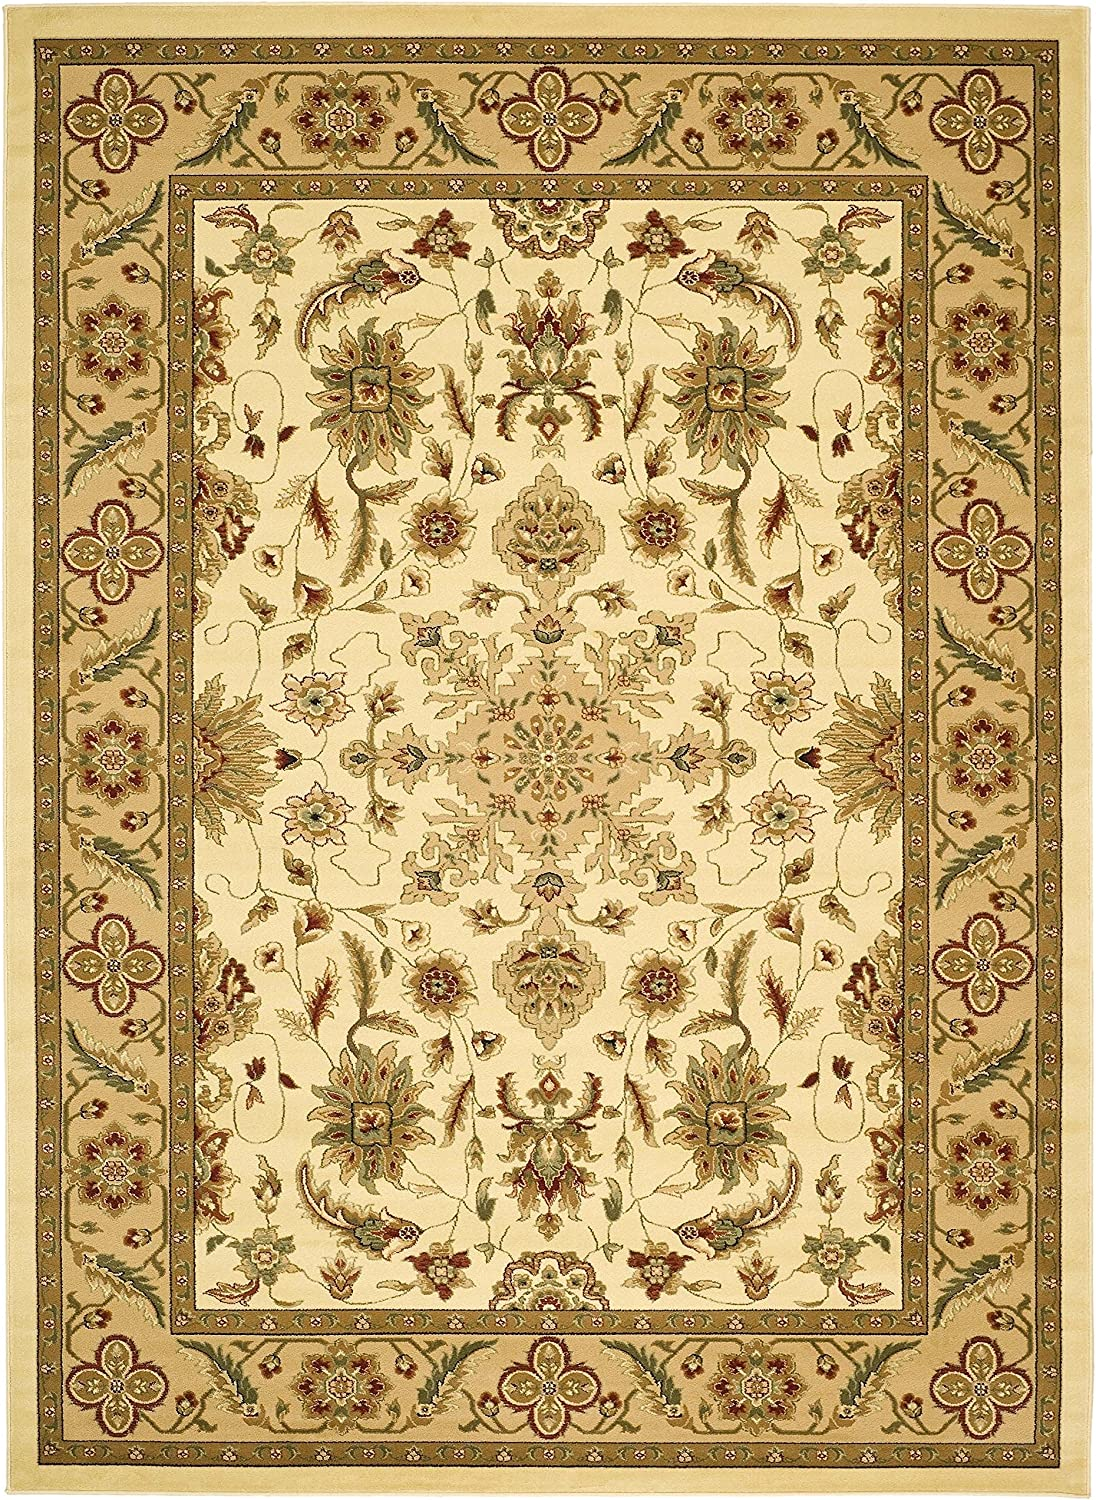 Amazon Com Safavieh Lyndhurst Collection Lnh211a Traditional Oriental Area Rug 9 X 12 Ivory Tan Furniture Decor